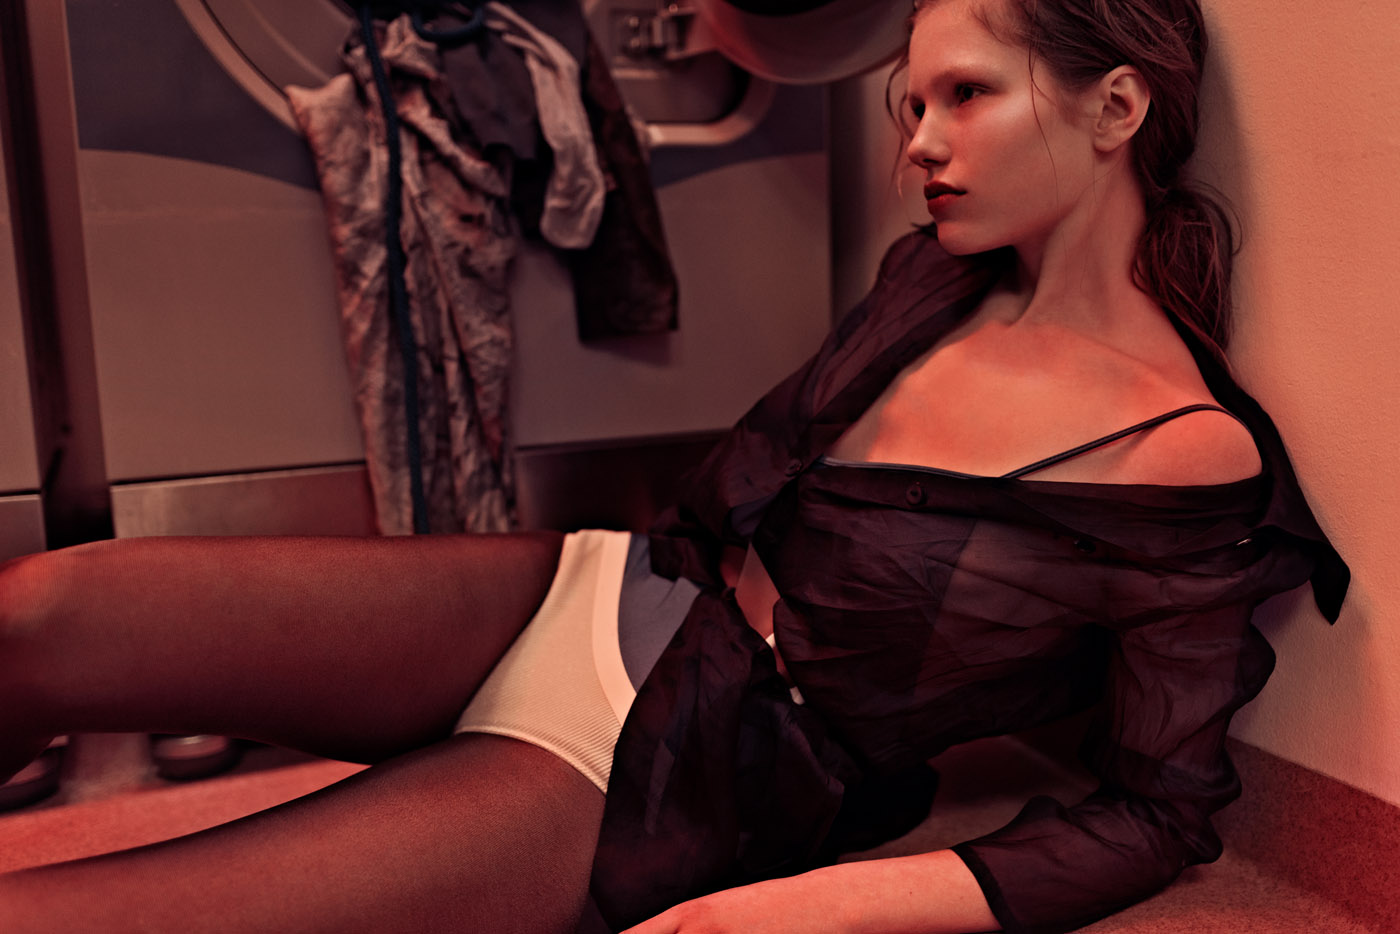 LAUNDRY DAY by Maja Johansson for CHASSEUR MAGAZINE (4)